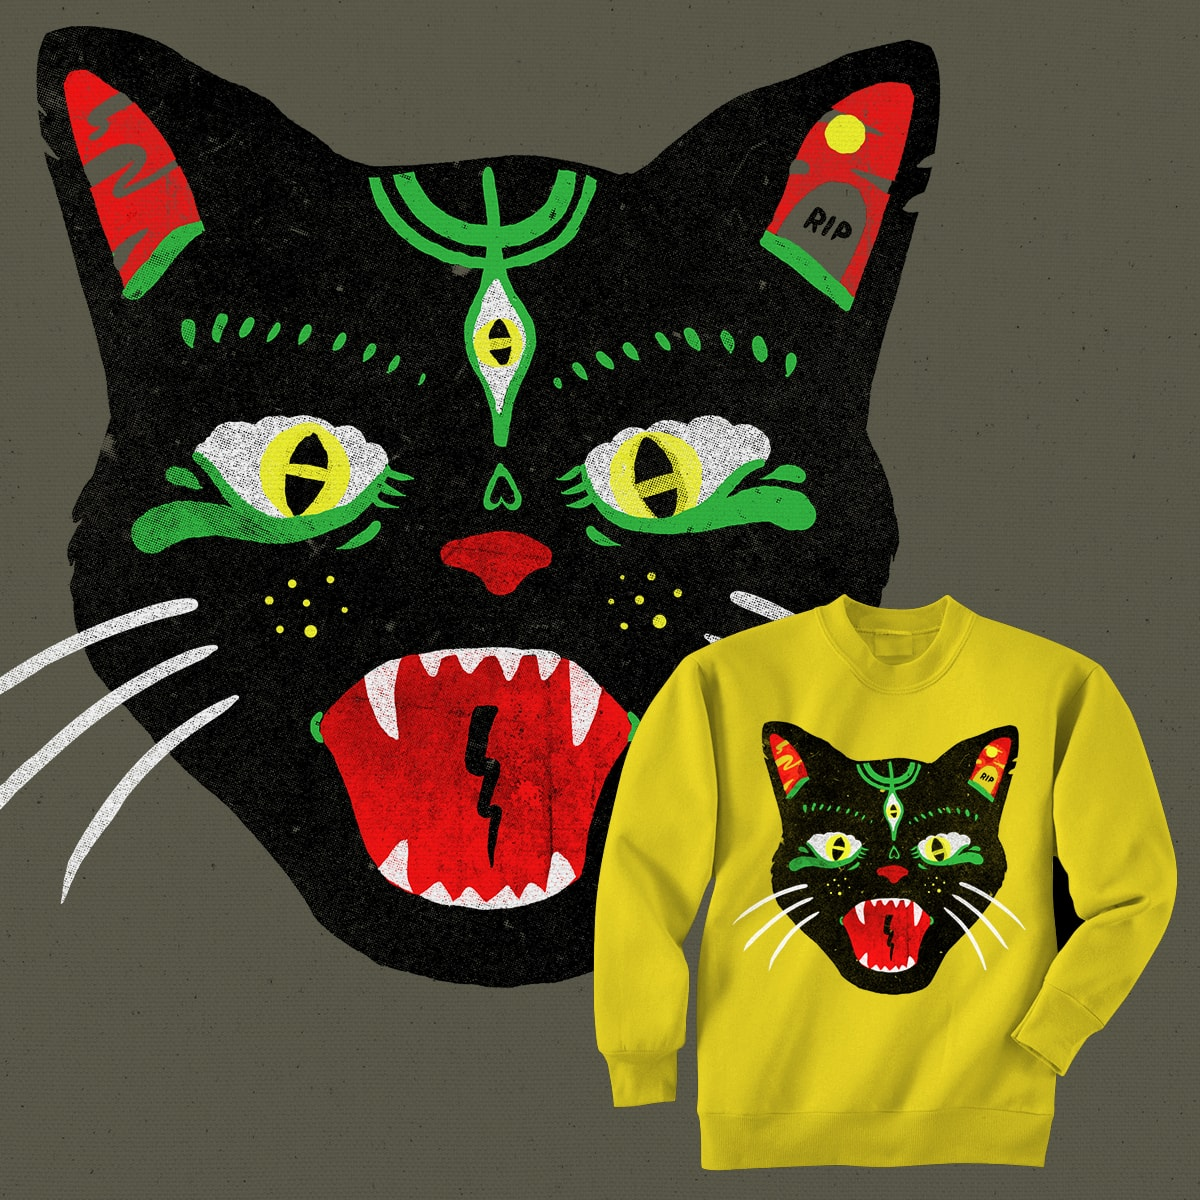 Hellcat by merkinspurlock on Threadless